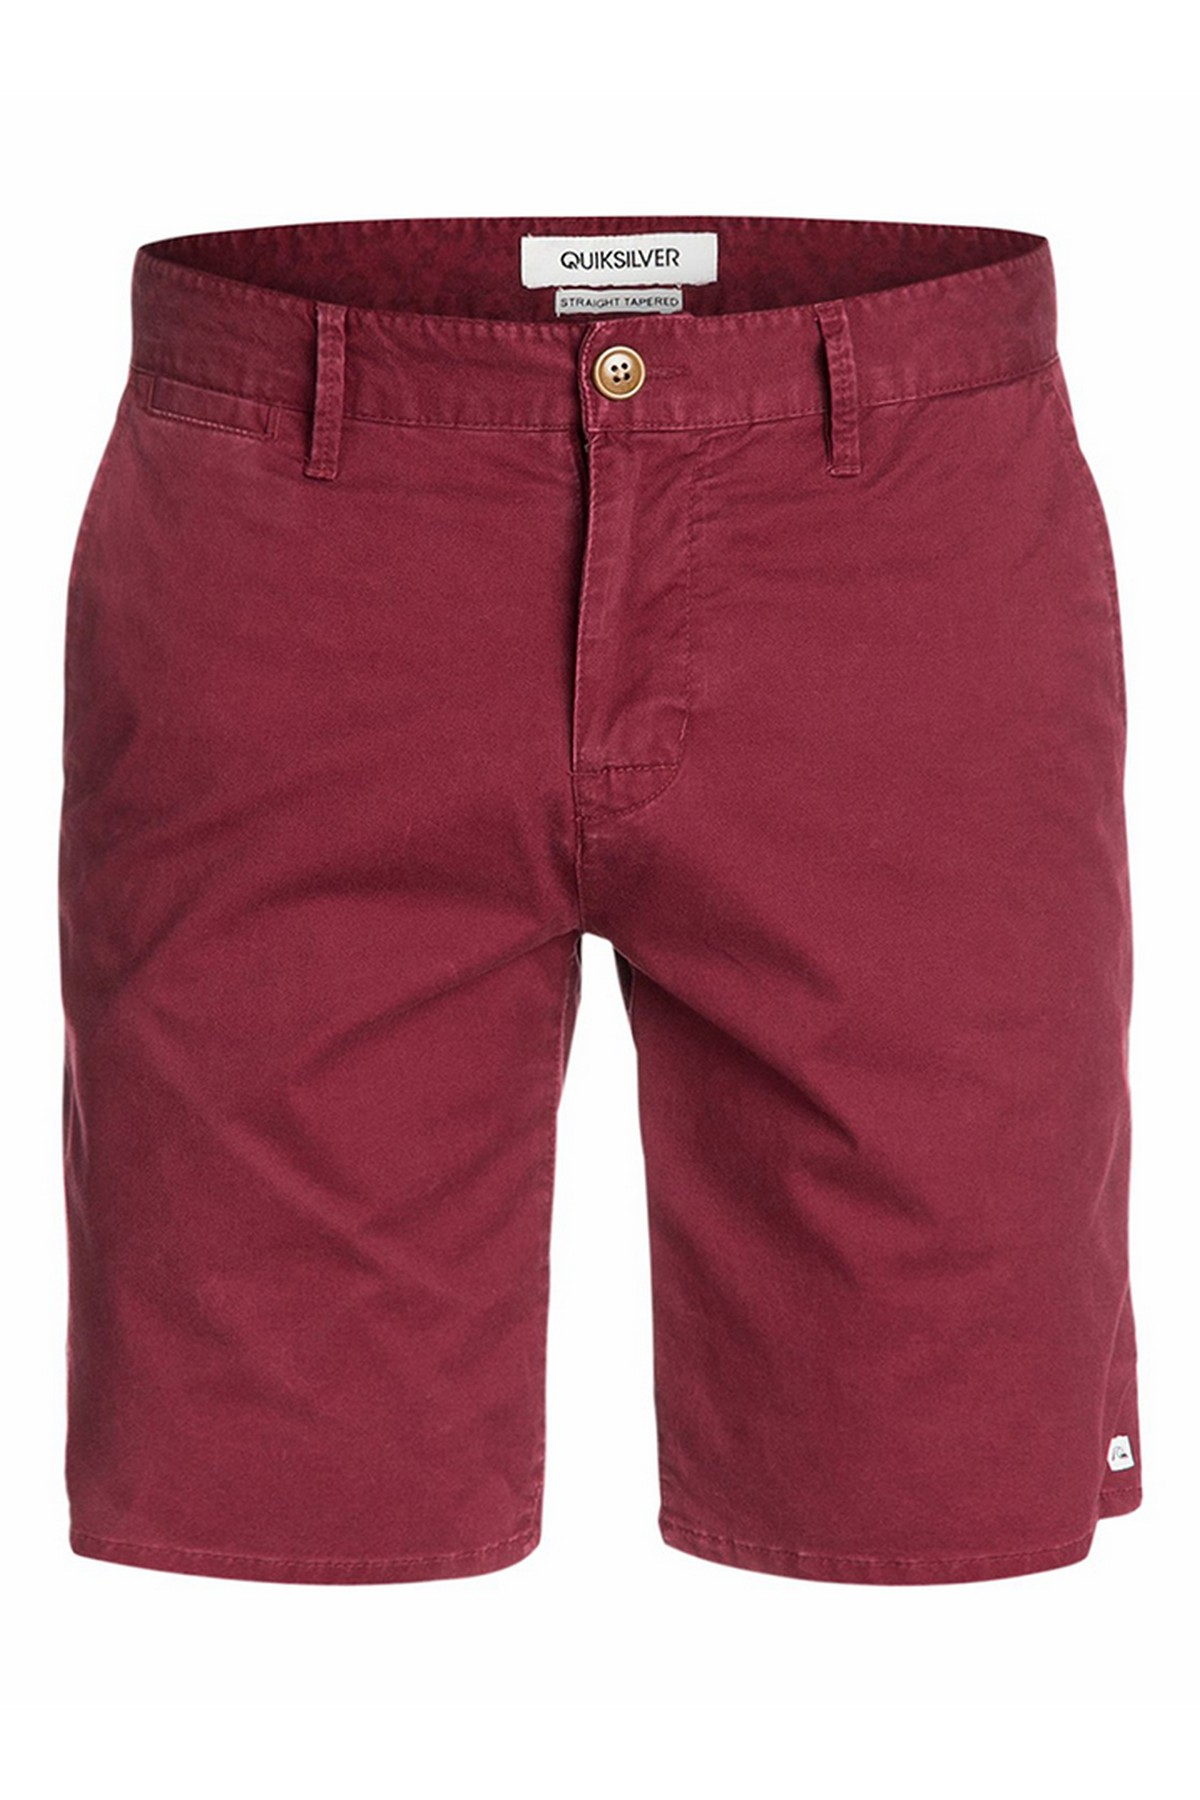 Quiksilver Everyday Chino Kapri Bordo (EQYWS03023-B)